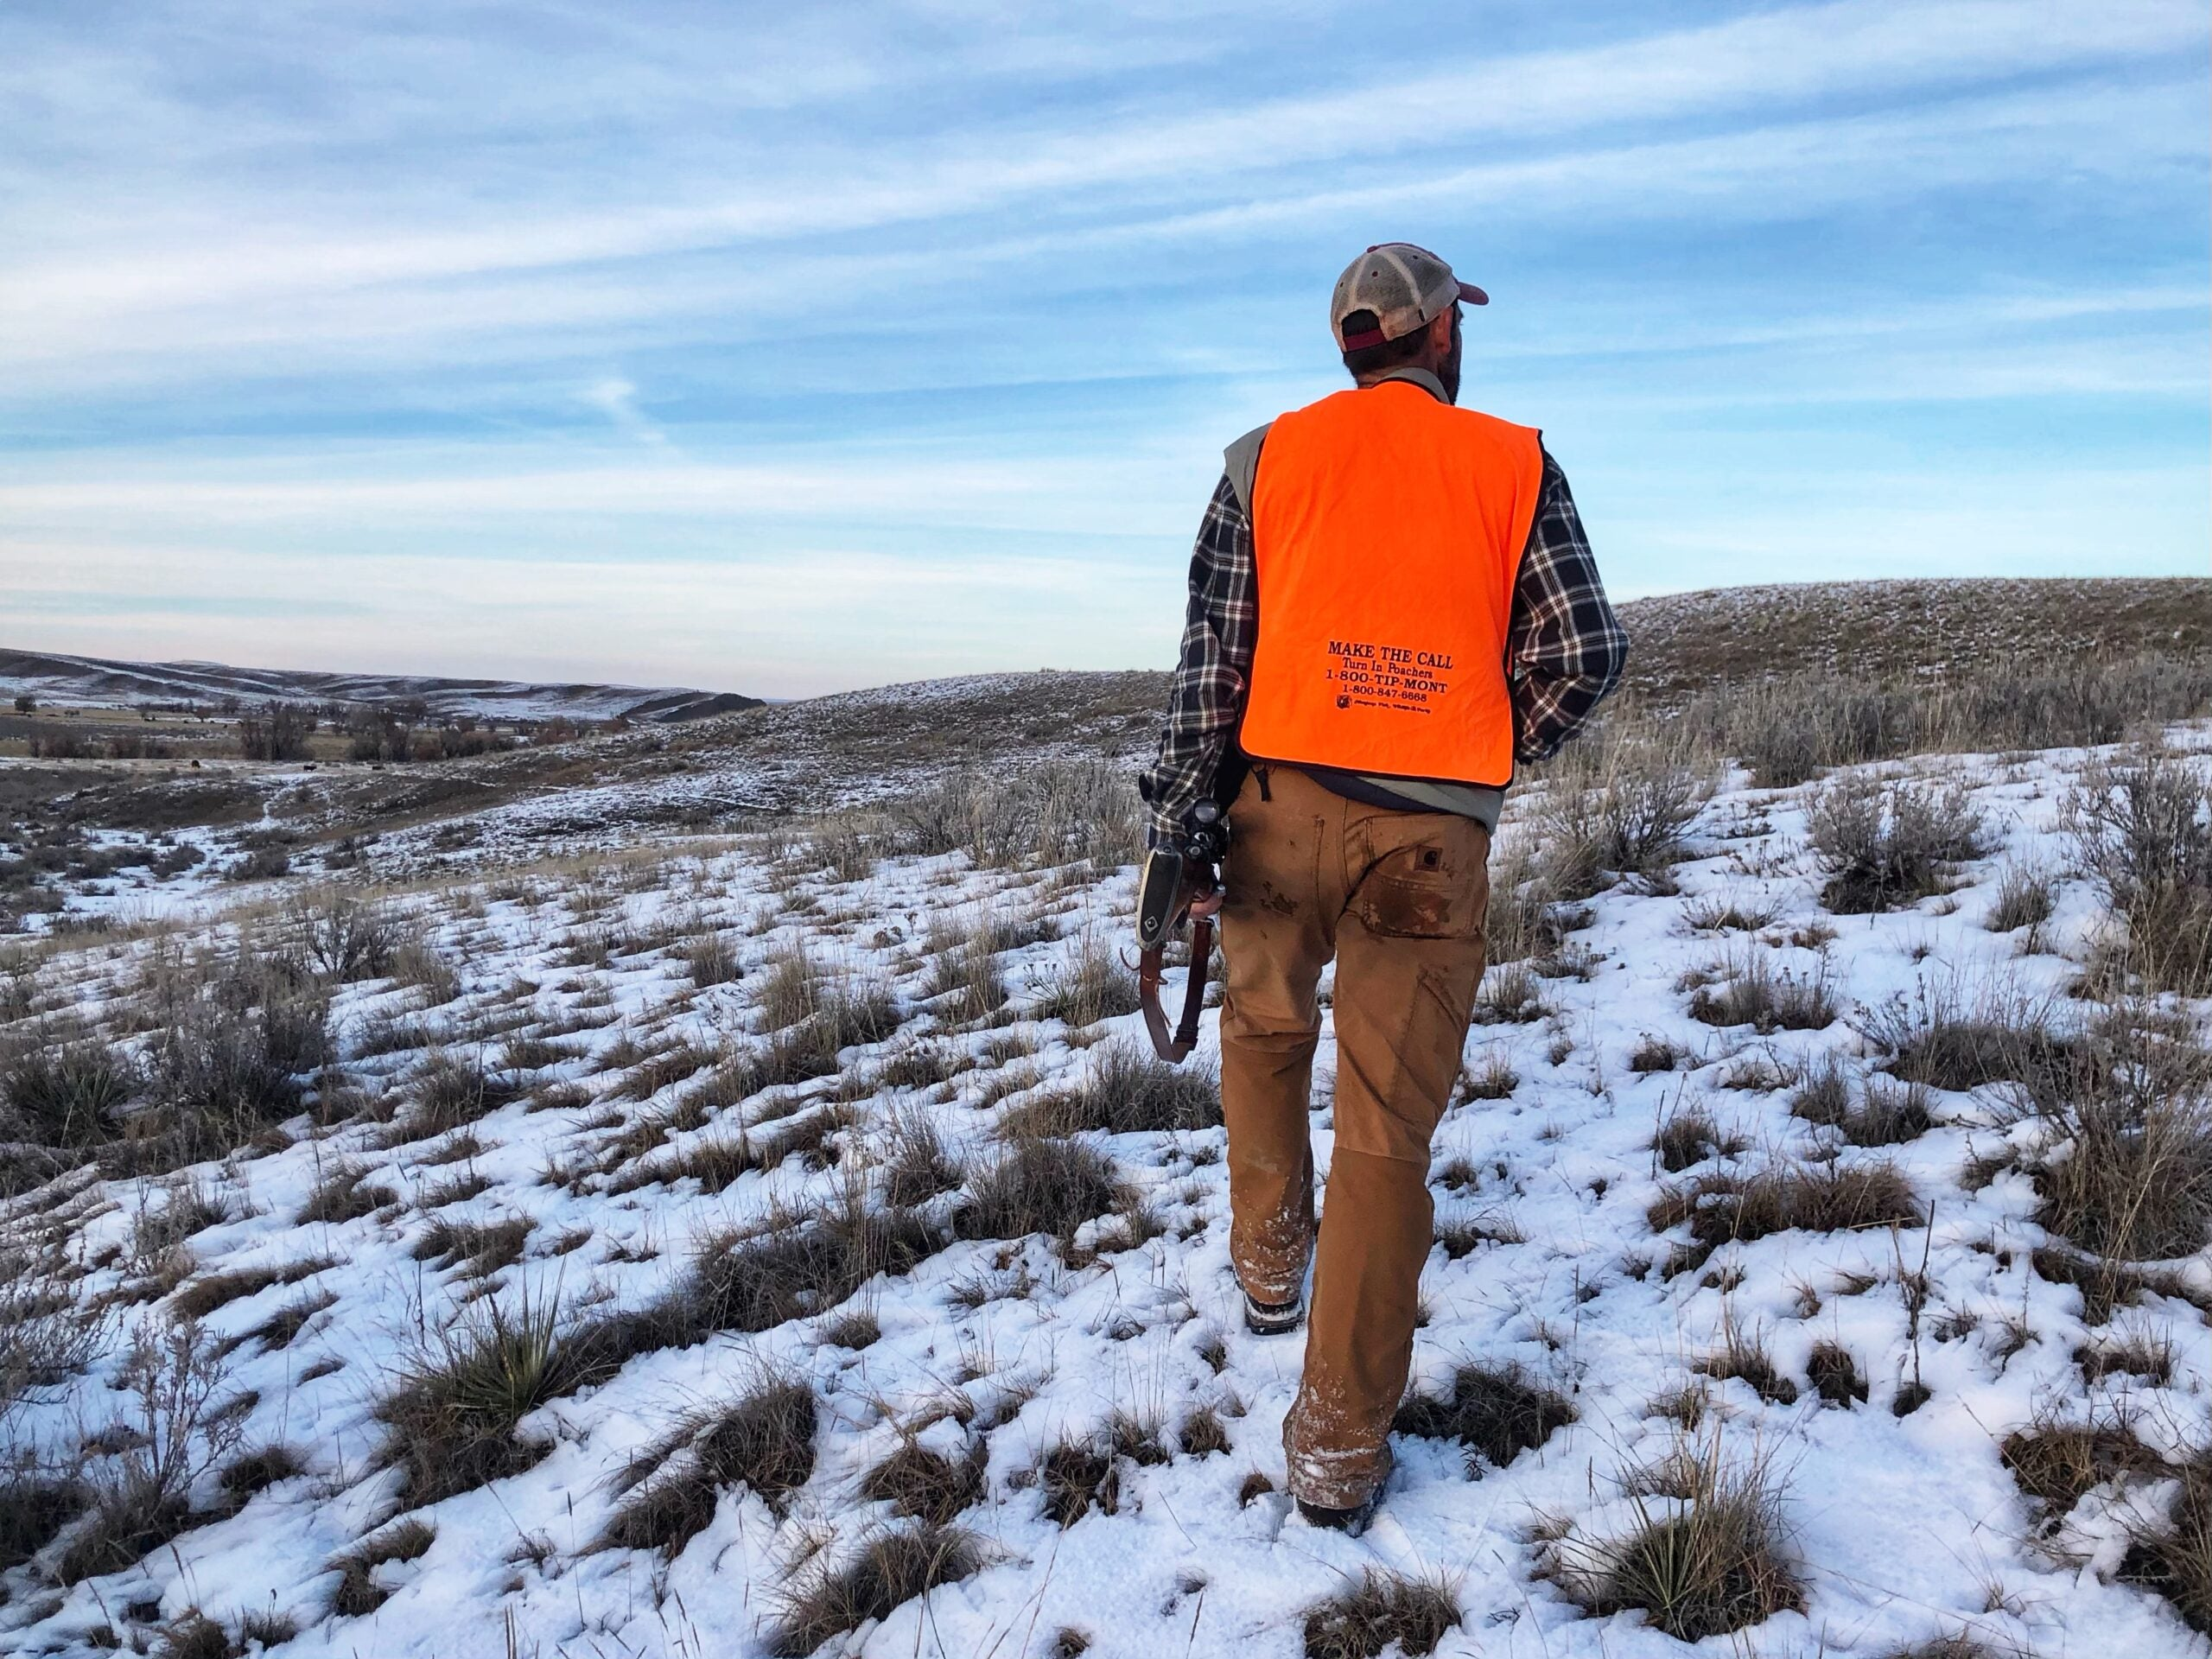 A Western deer hunter in a flannel and blaze orange vest carries a rifle on the Montana prairie.